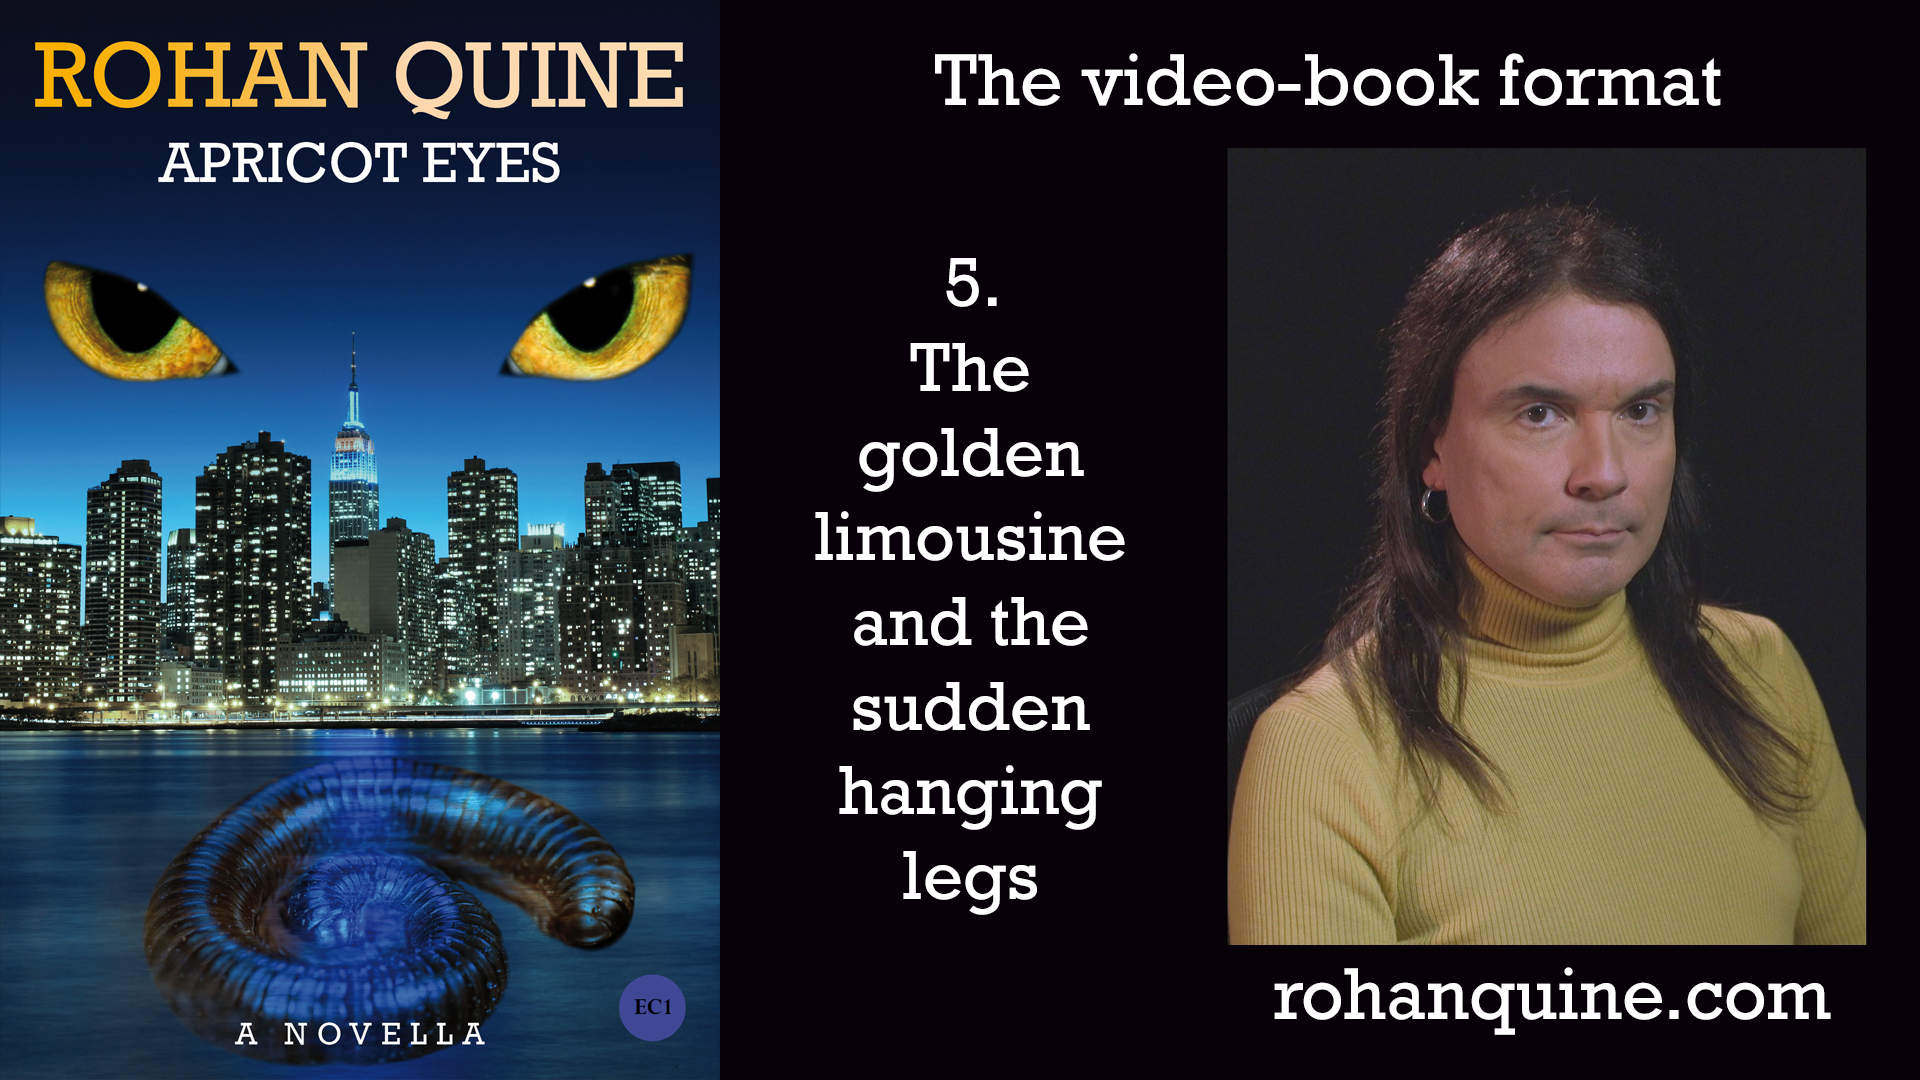 APRICOT EYES by Rohan Quine - video-book format - chapter 5